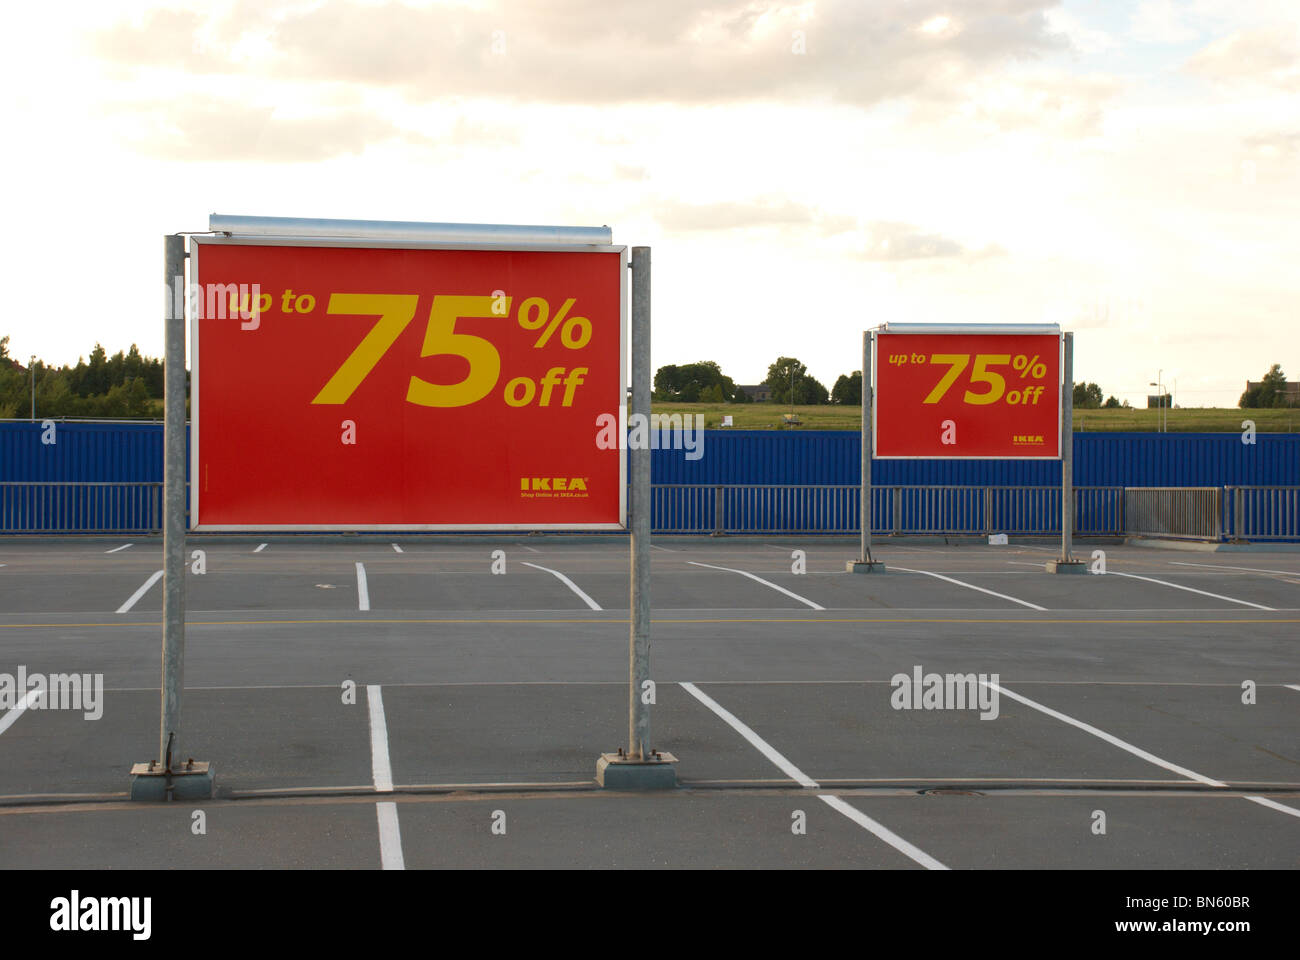 Ikea Poster 75 Off Sale Poster In An Ikea Car Park Stock Photo 30250187 Alamy